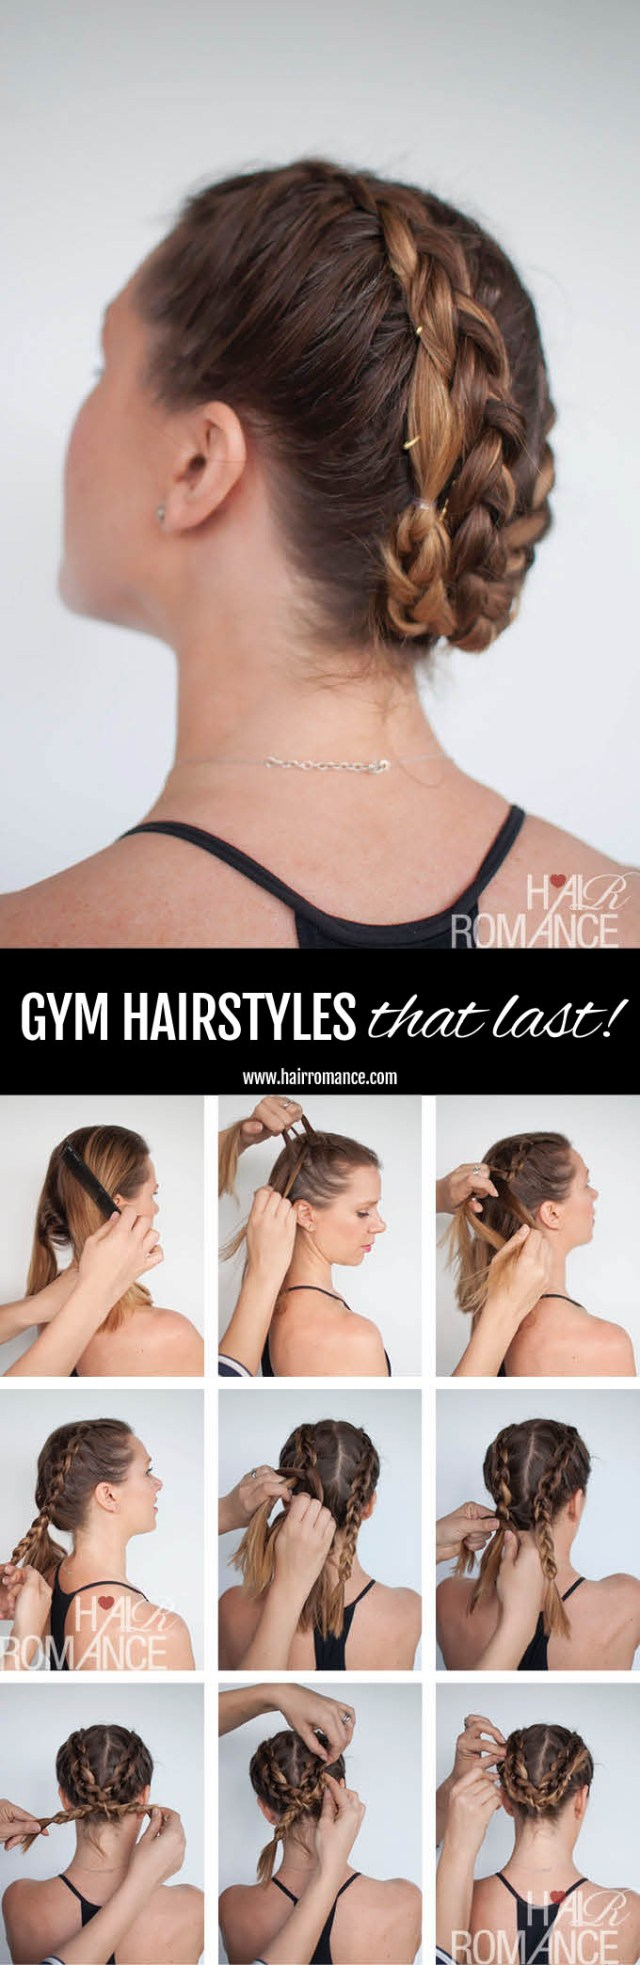 how to look good while you workout – 3 long-lasting